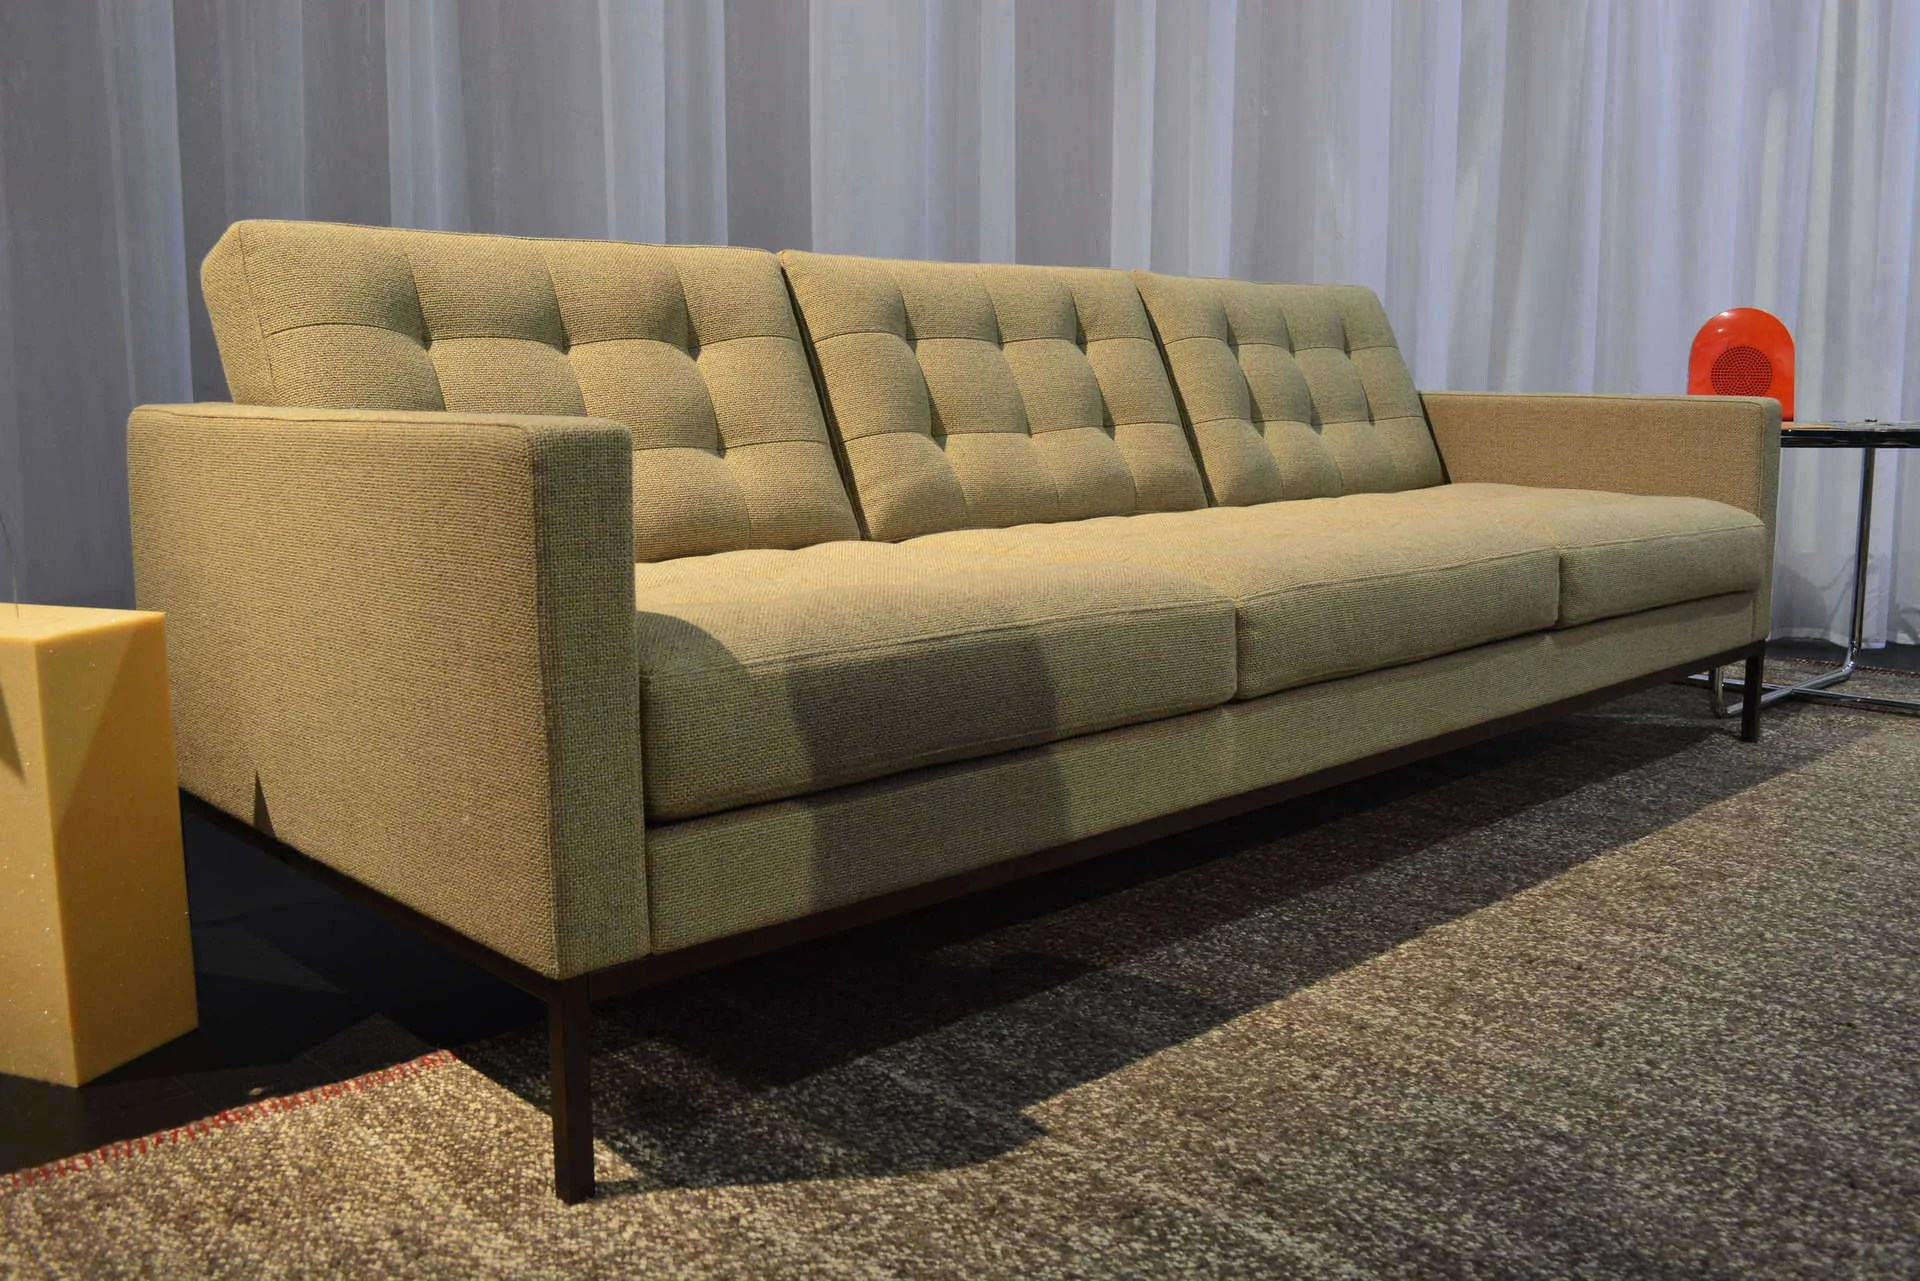 Relax Sofa Florence Knoll Relax 3 Seat Sofa